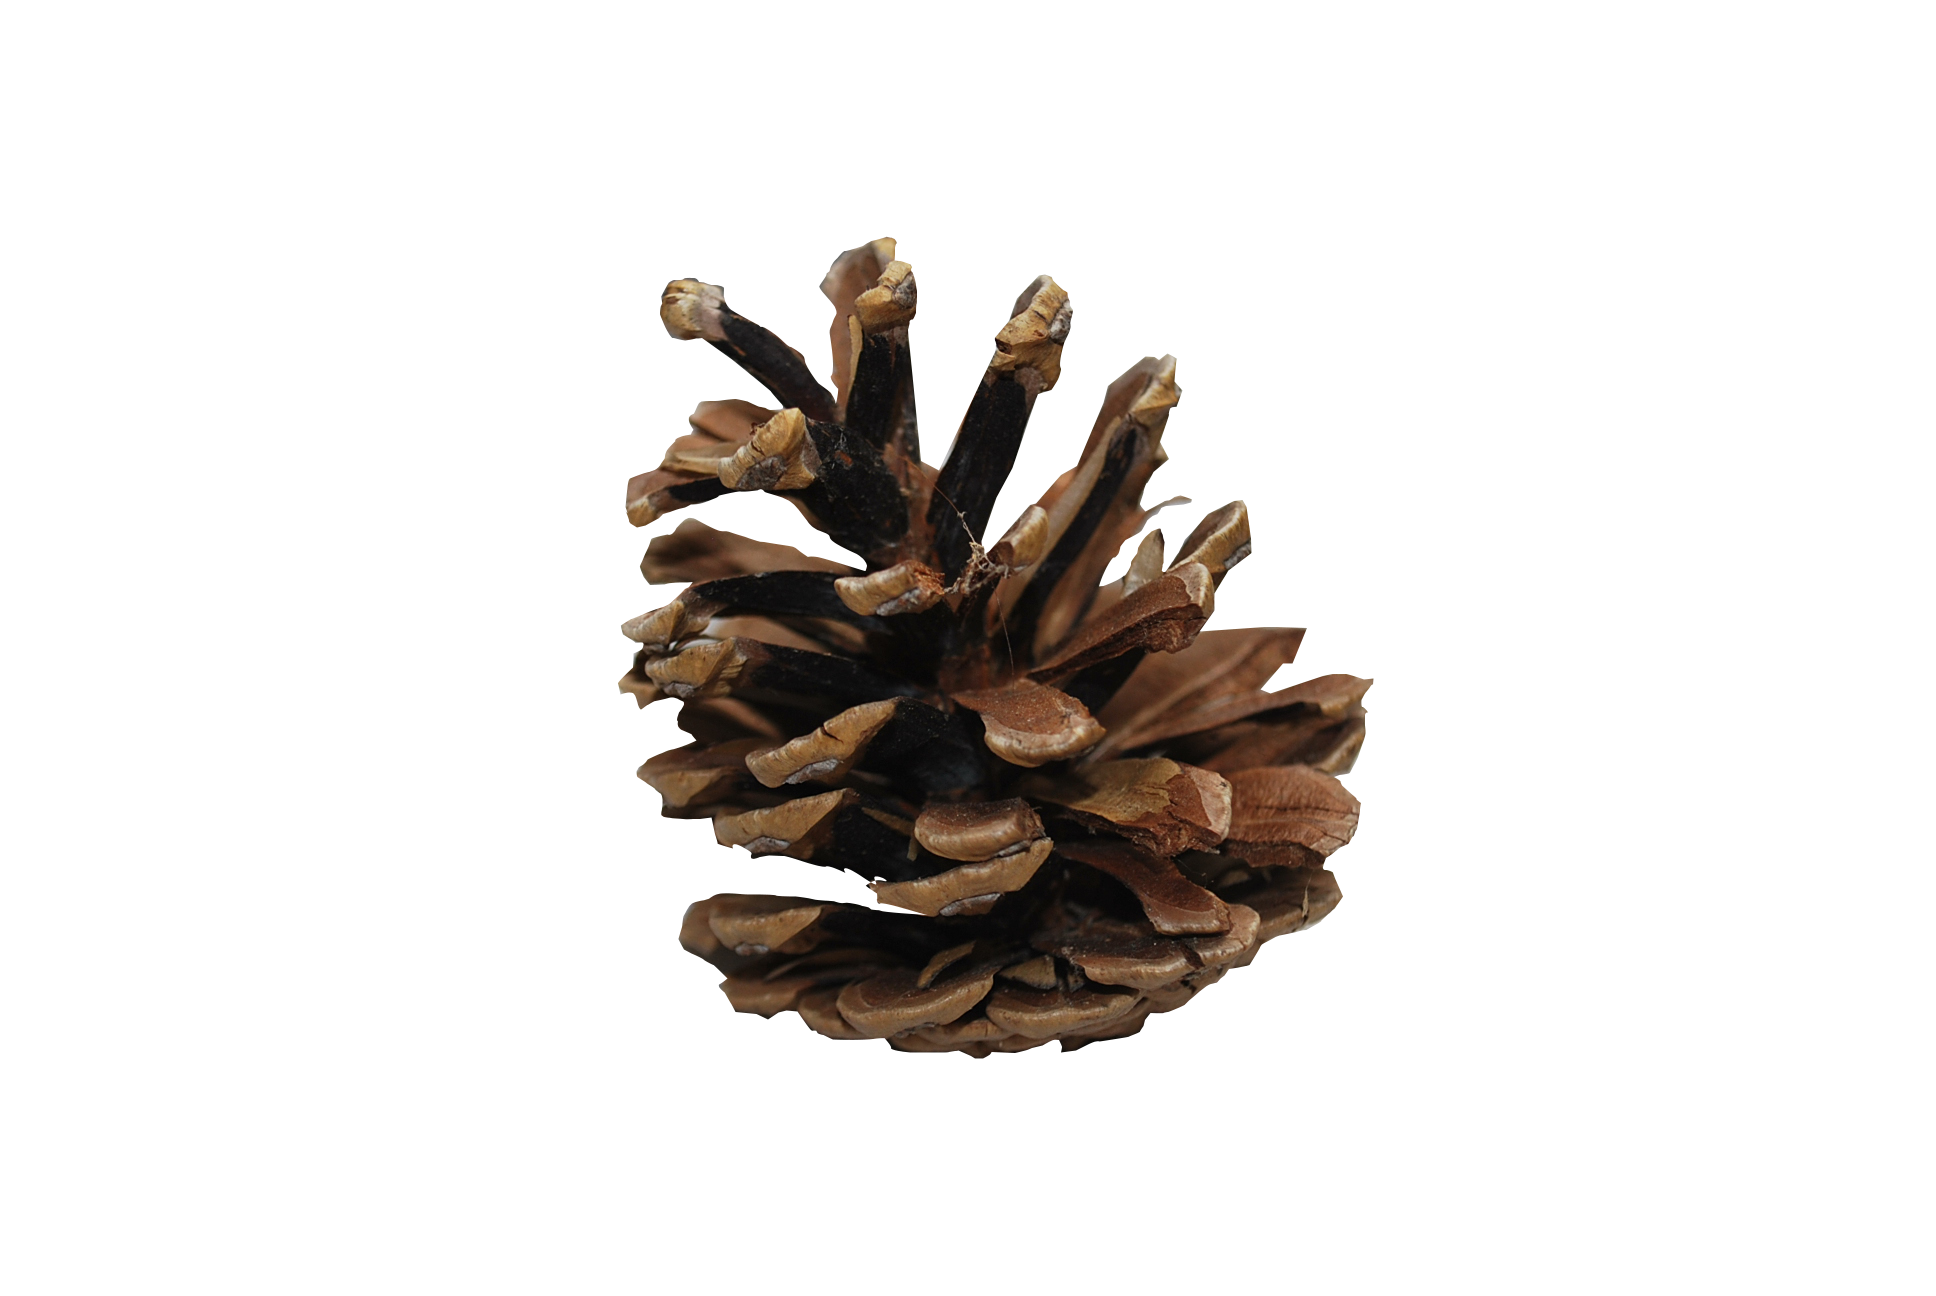 Pine cone PNG image free download.